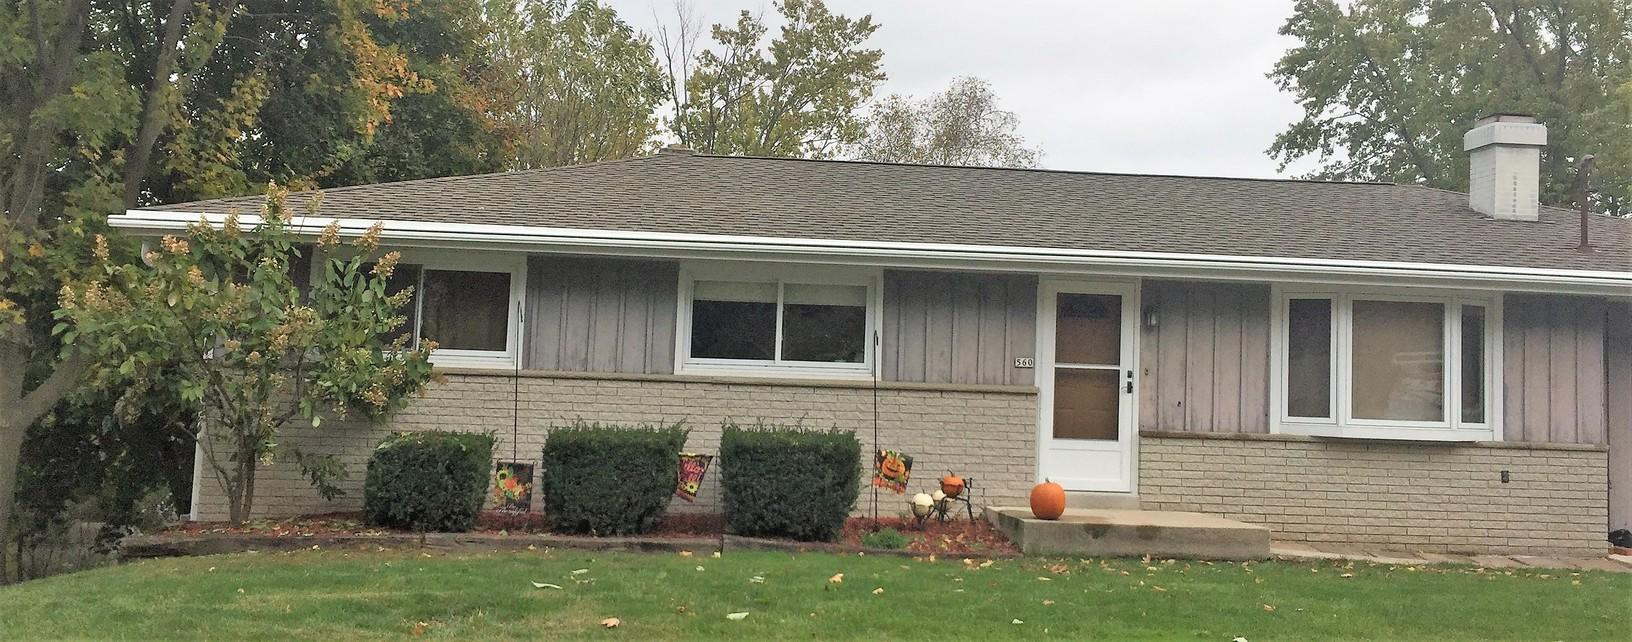 LeafGuard Gutters Installed on a Ranch Home in Random Lake, WI - After Photo